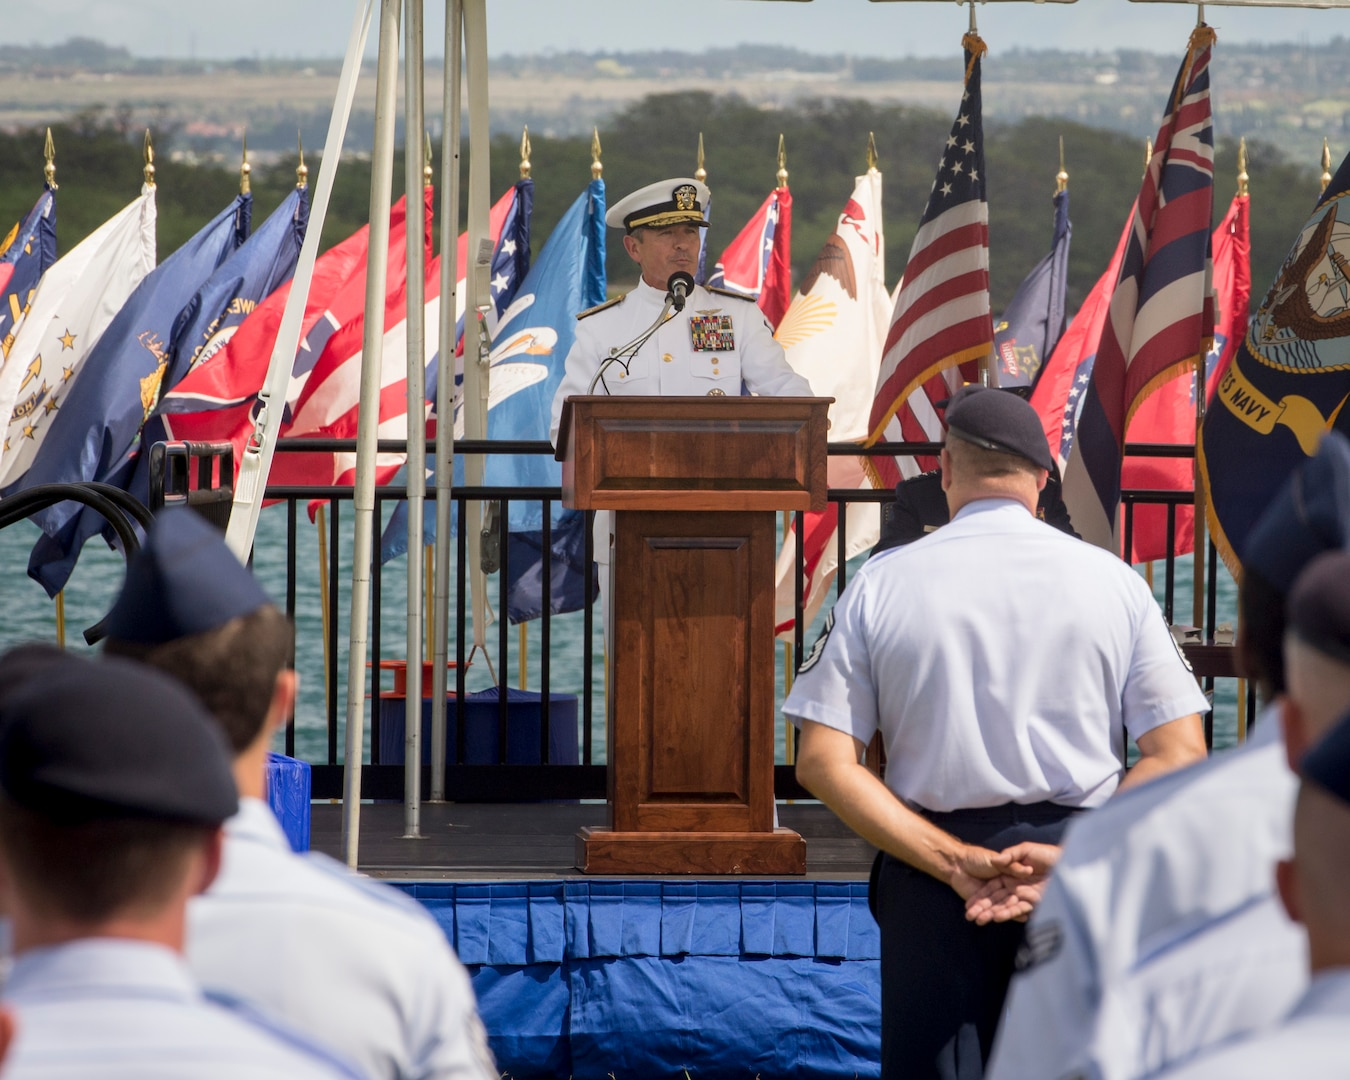 Adm. Harry B. Harris, Jr., U.S. Pacific Command commander, provides remarks during an assumption-of-command ceremony at Joint Base Pearl Harbor-Hickam, Hawaii, July 12, 2016. Harris and Gen. David L. Goldfein, U.S. Air Force Chief of Staff, presided over the ceremony in which Gen. Terrence J. O'Shaughnessy assumed command of Pacific Air Forces. (U.S. Air Force photo by Capt. Raymond Geoffroy)